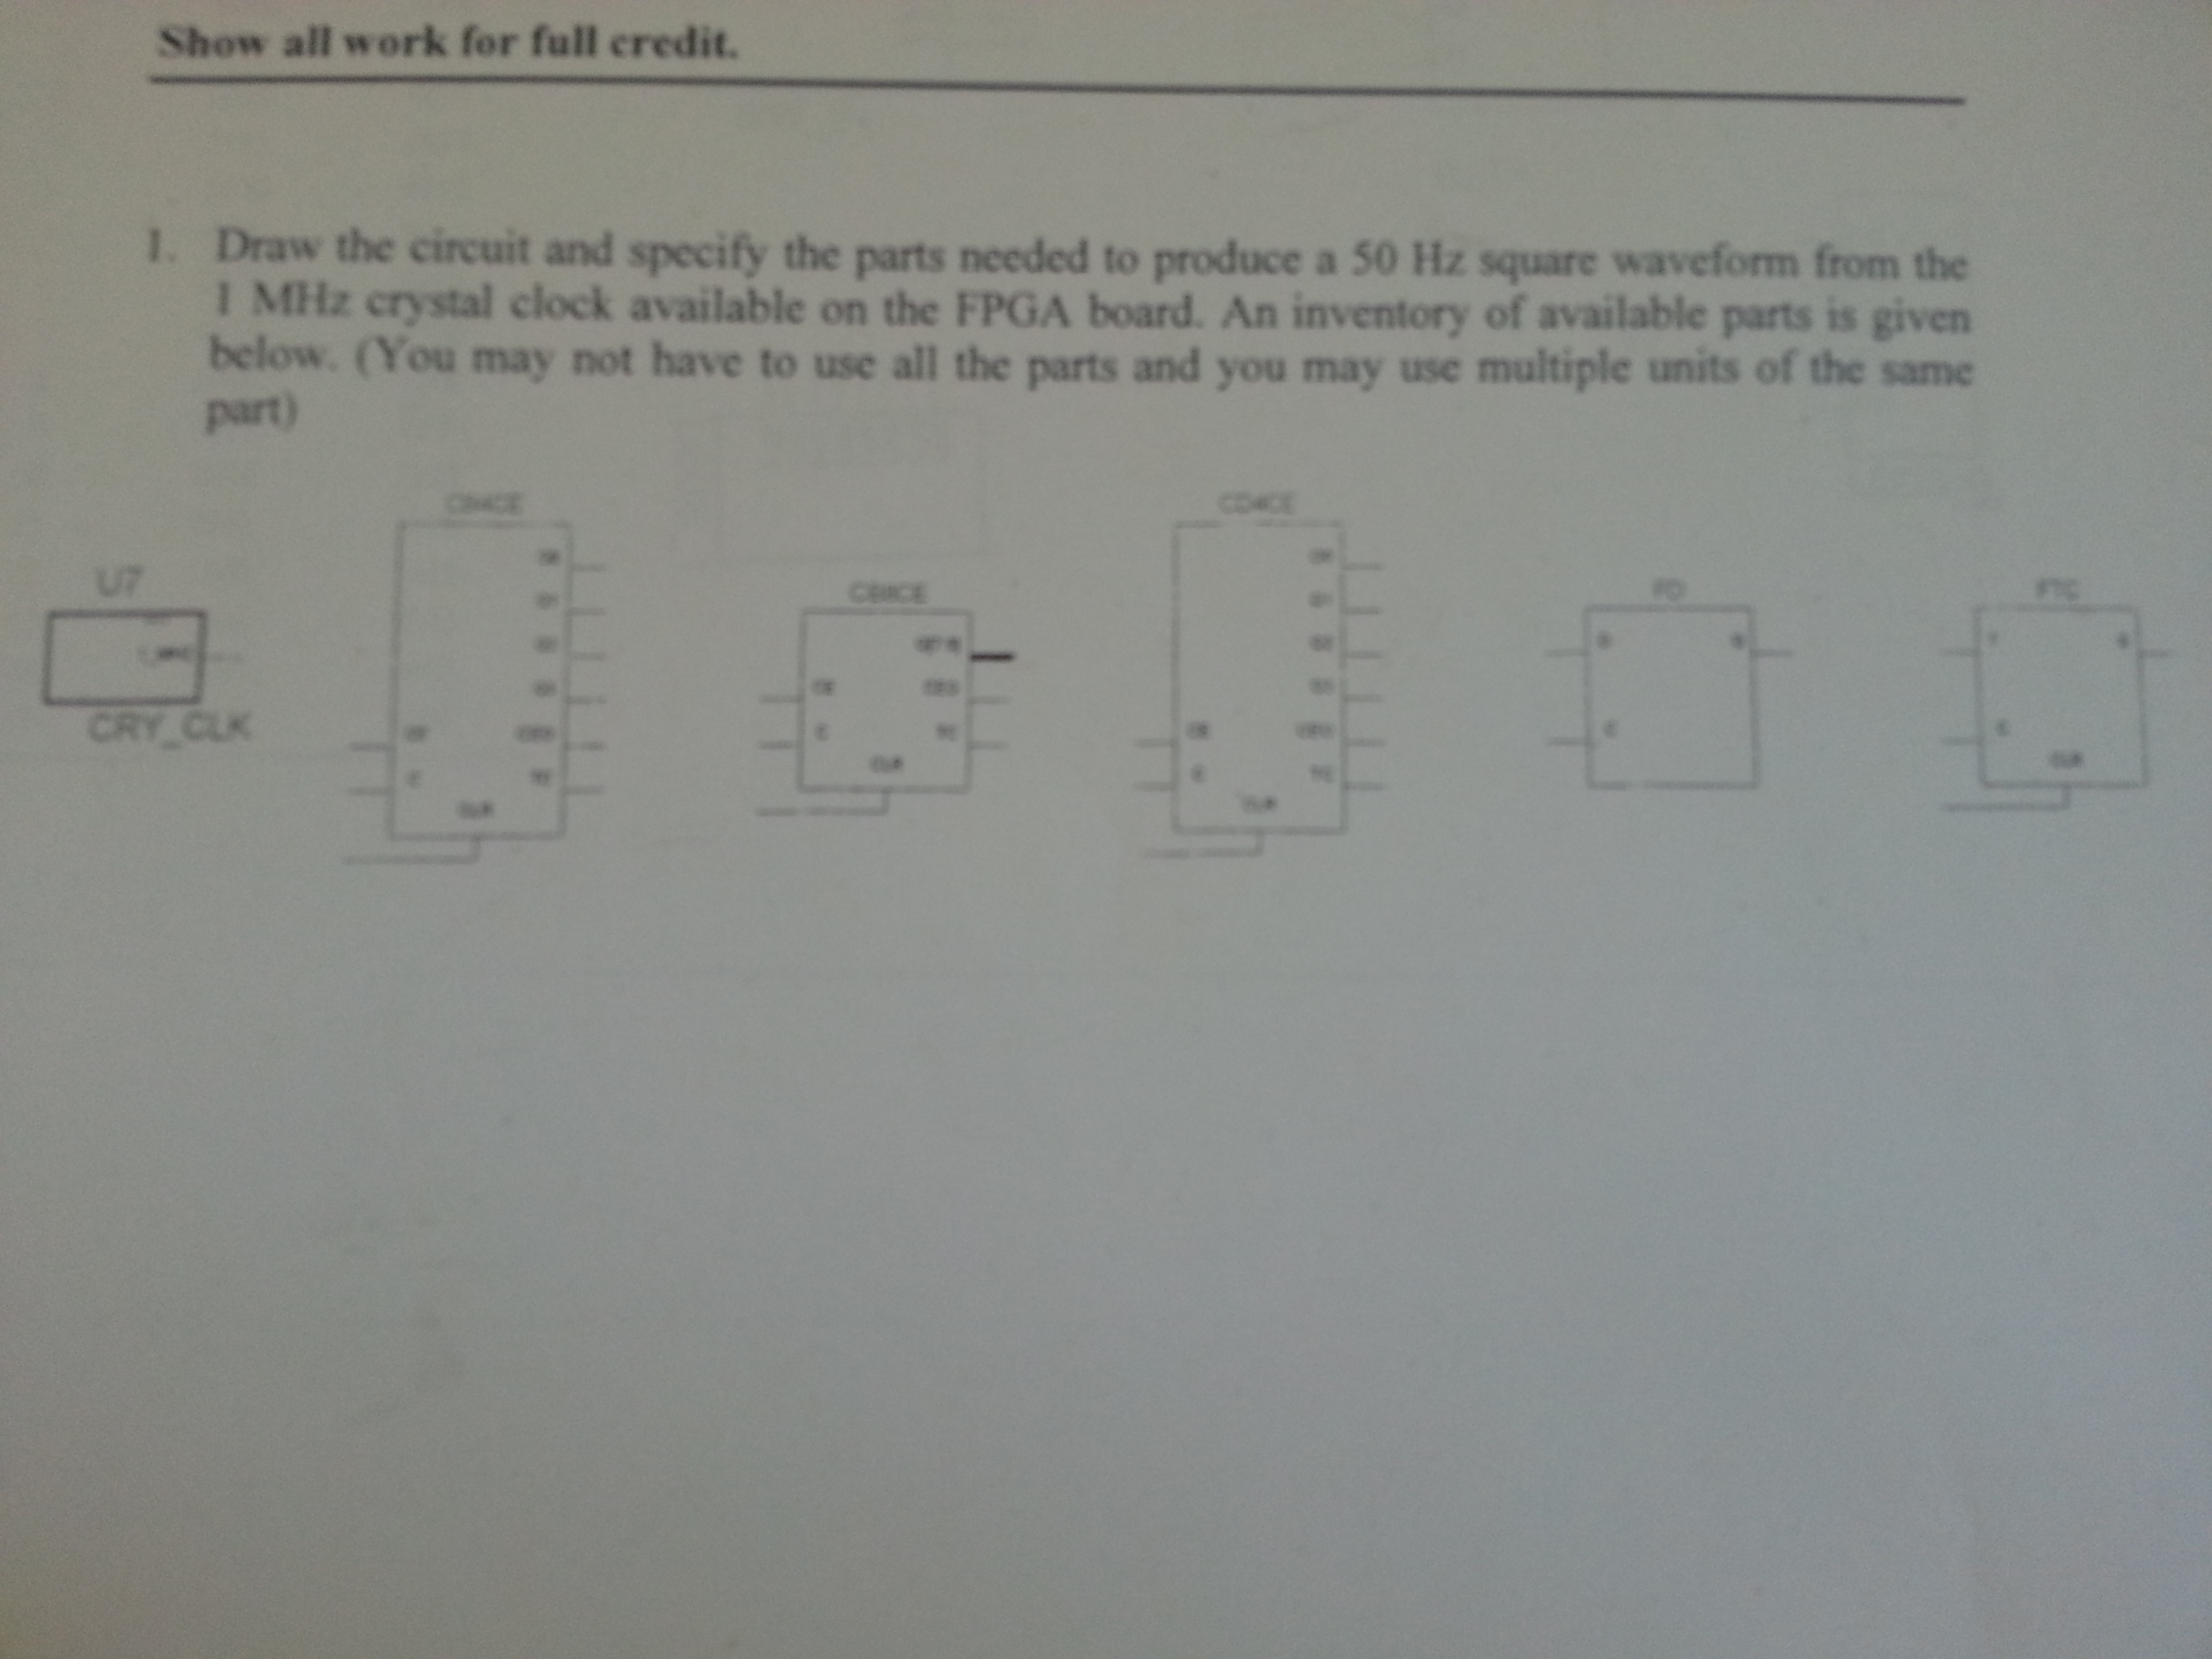 draw the circuit and specify the parts needed to p